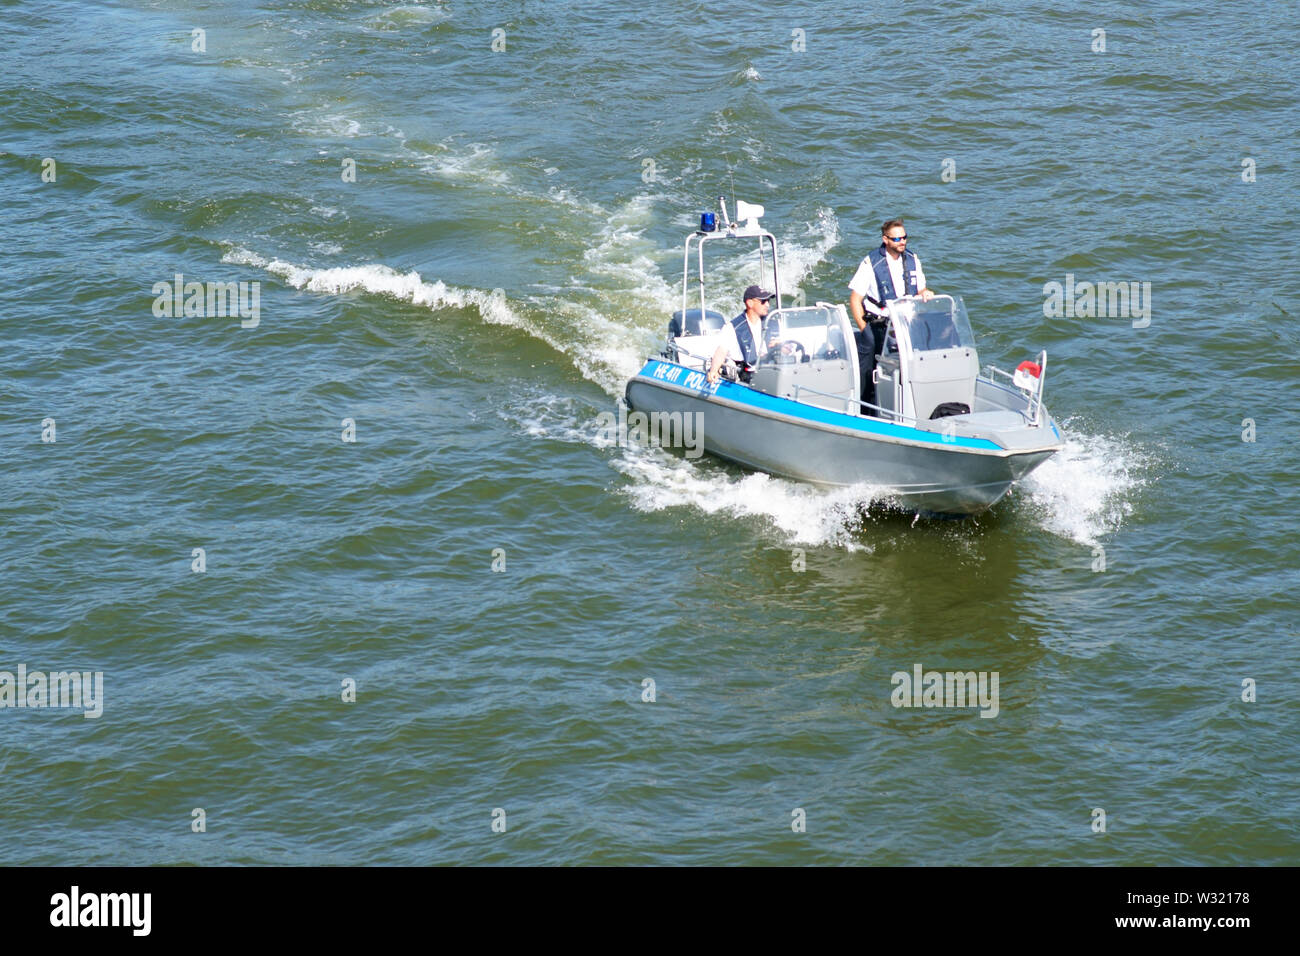 Frankfurt, Germany - July 06, 2019: The top view of a police boat on patrol on the River Main on July 06, 2019 in Frankfurt. Stock Photo